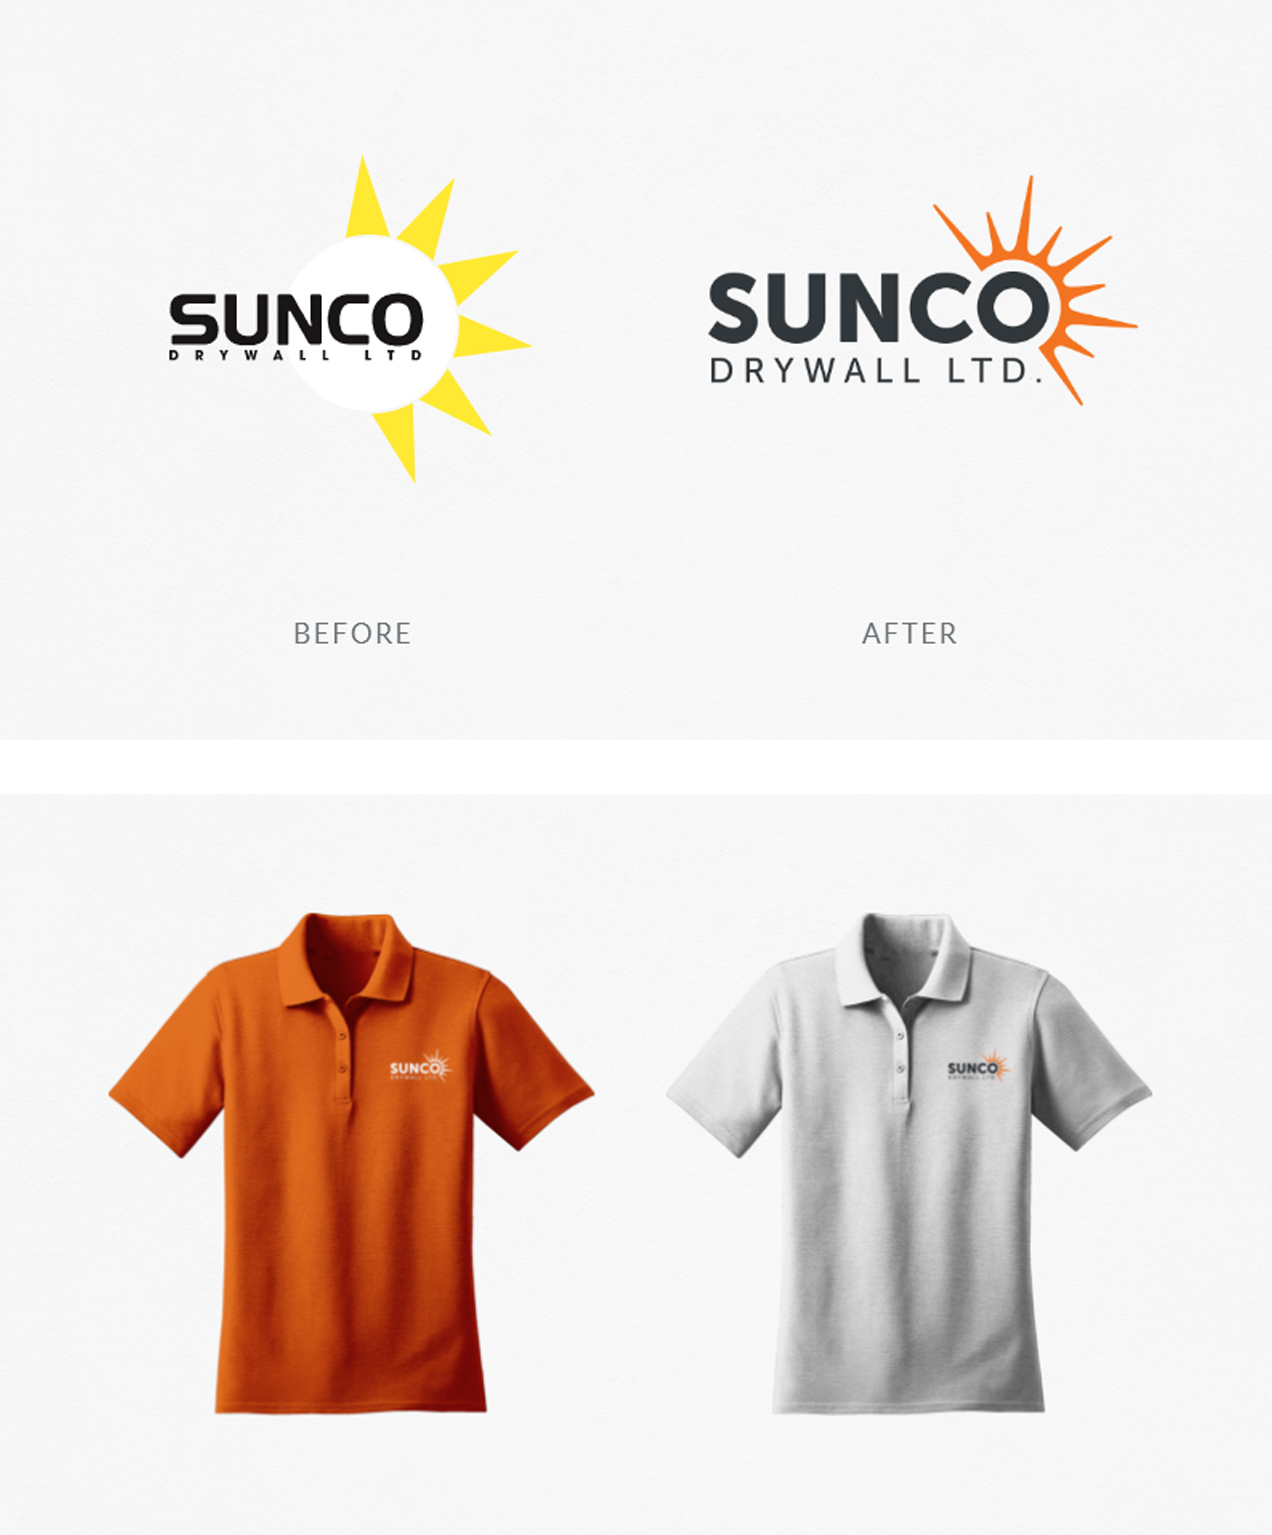 branding for construction trade company sunco branding